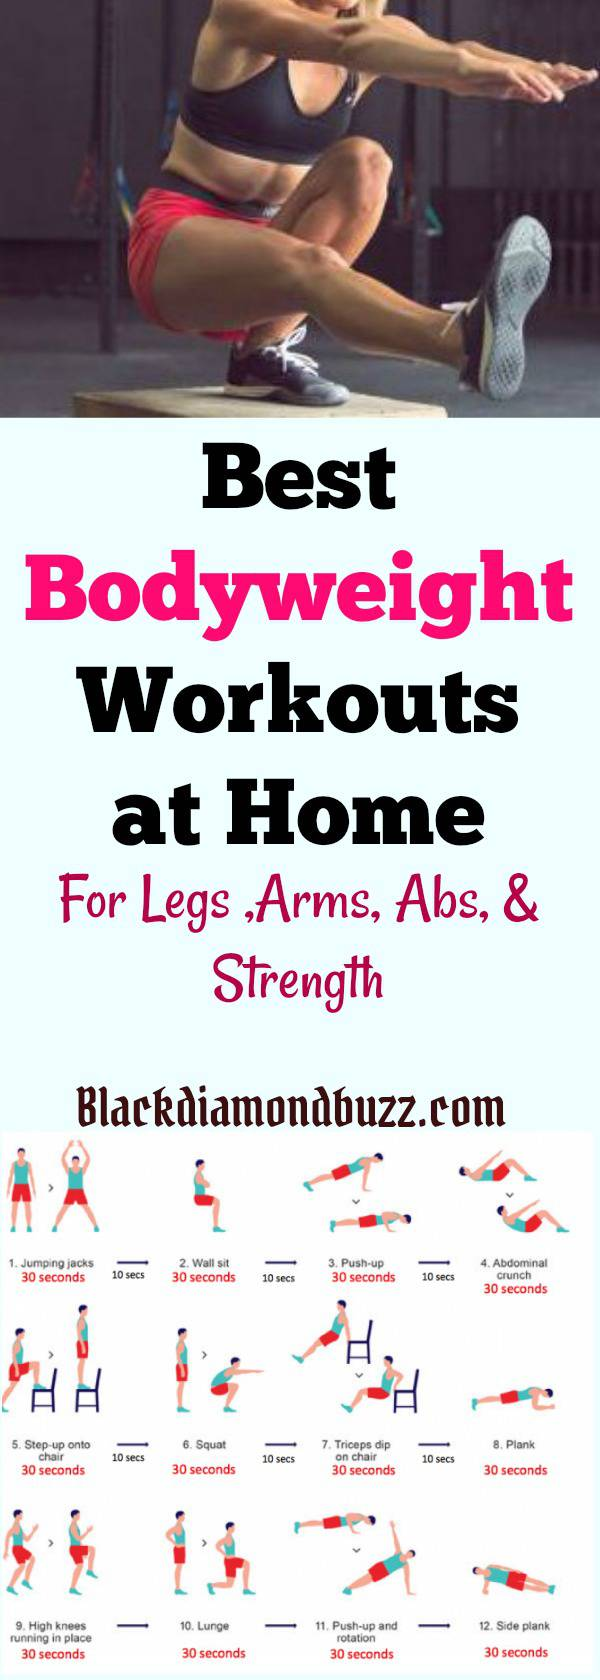 Best Bodyweight Exercises for Weight Loss at Home